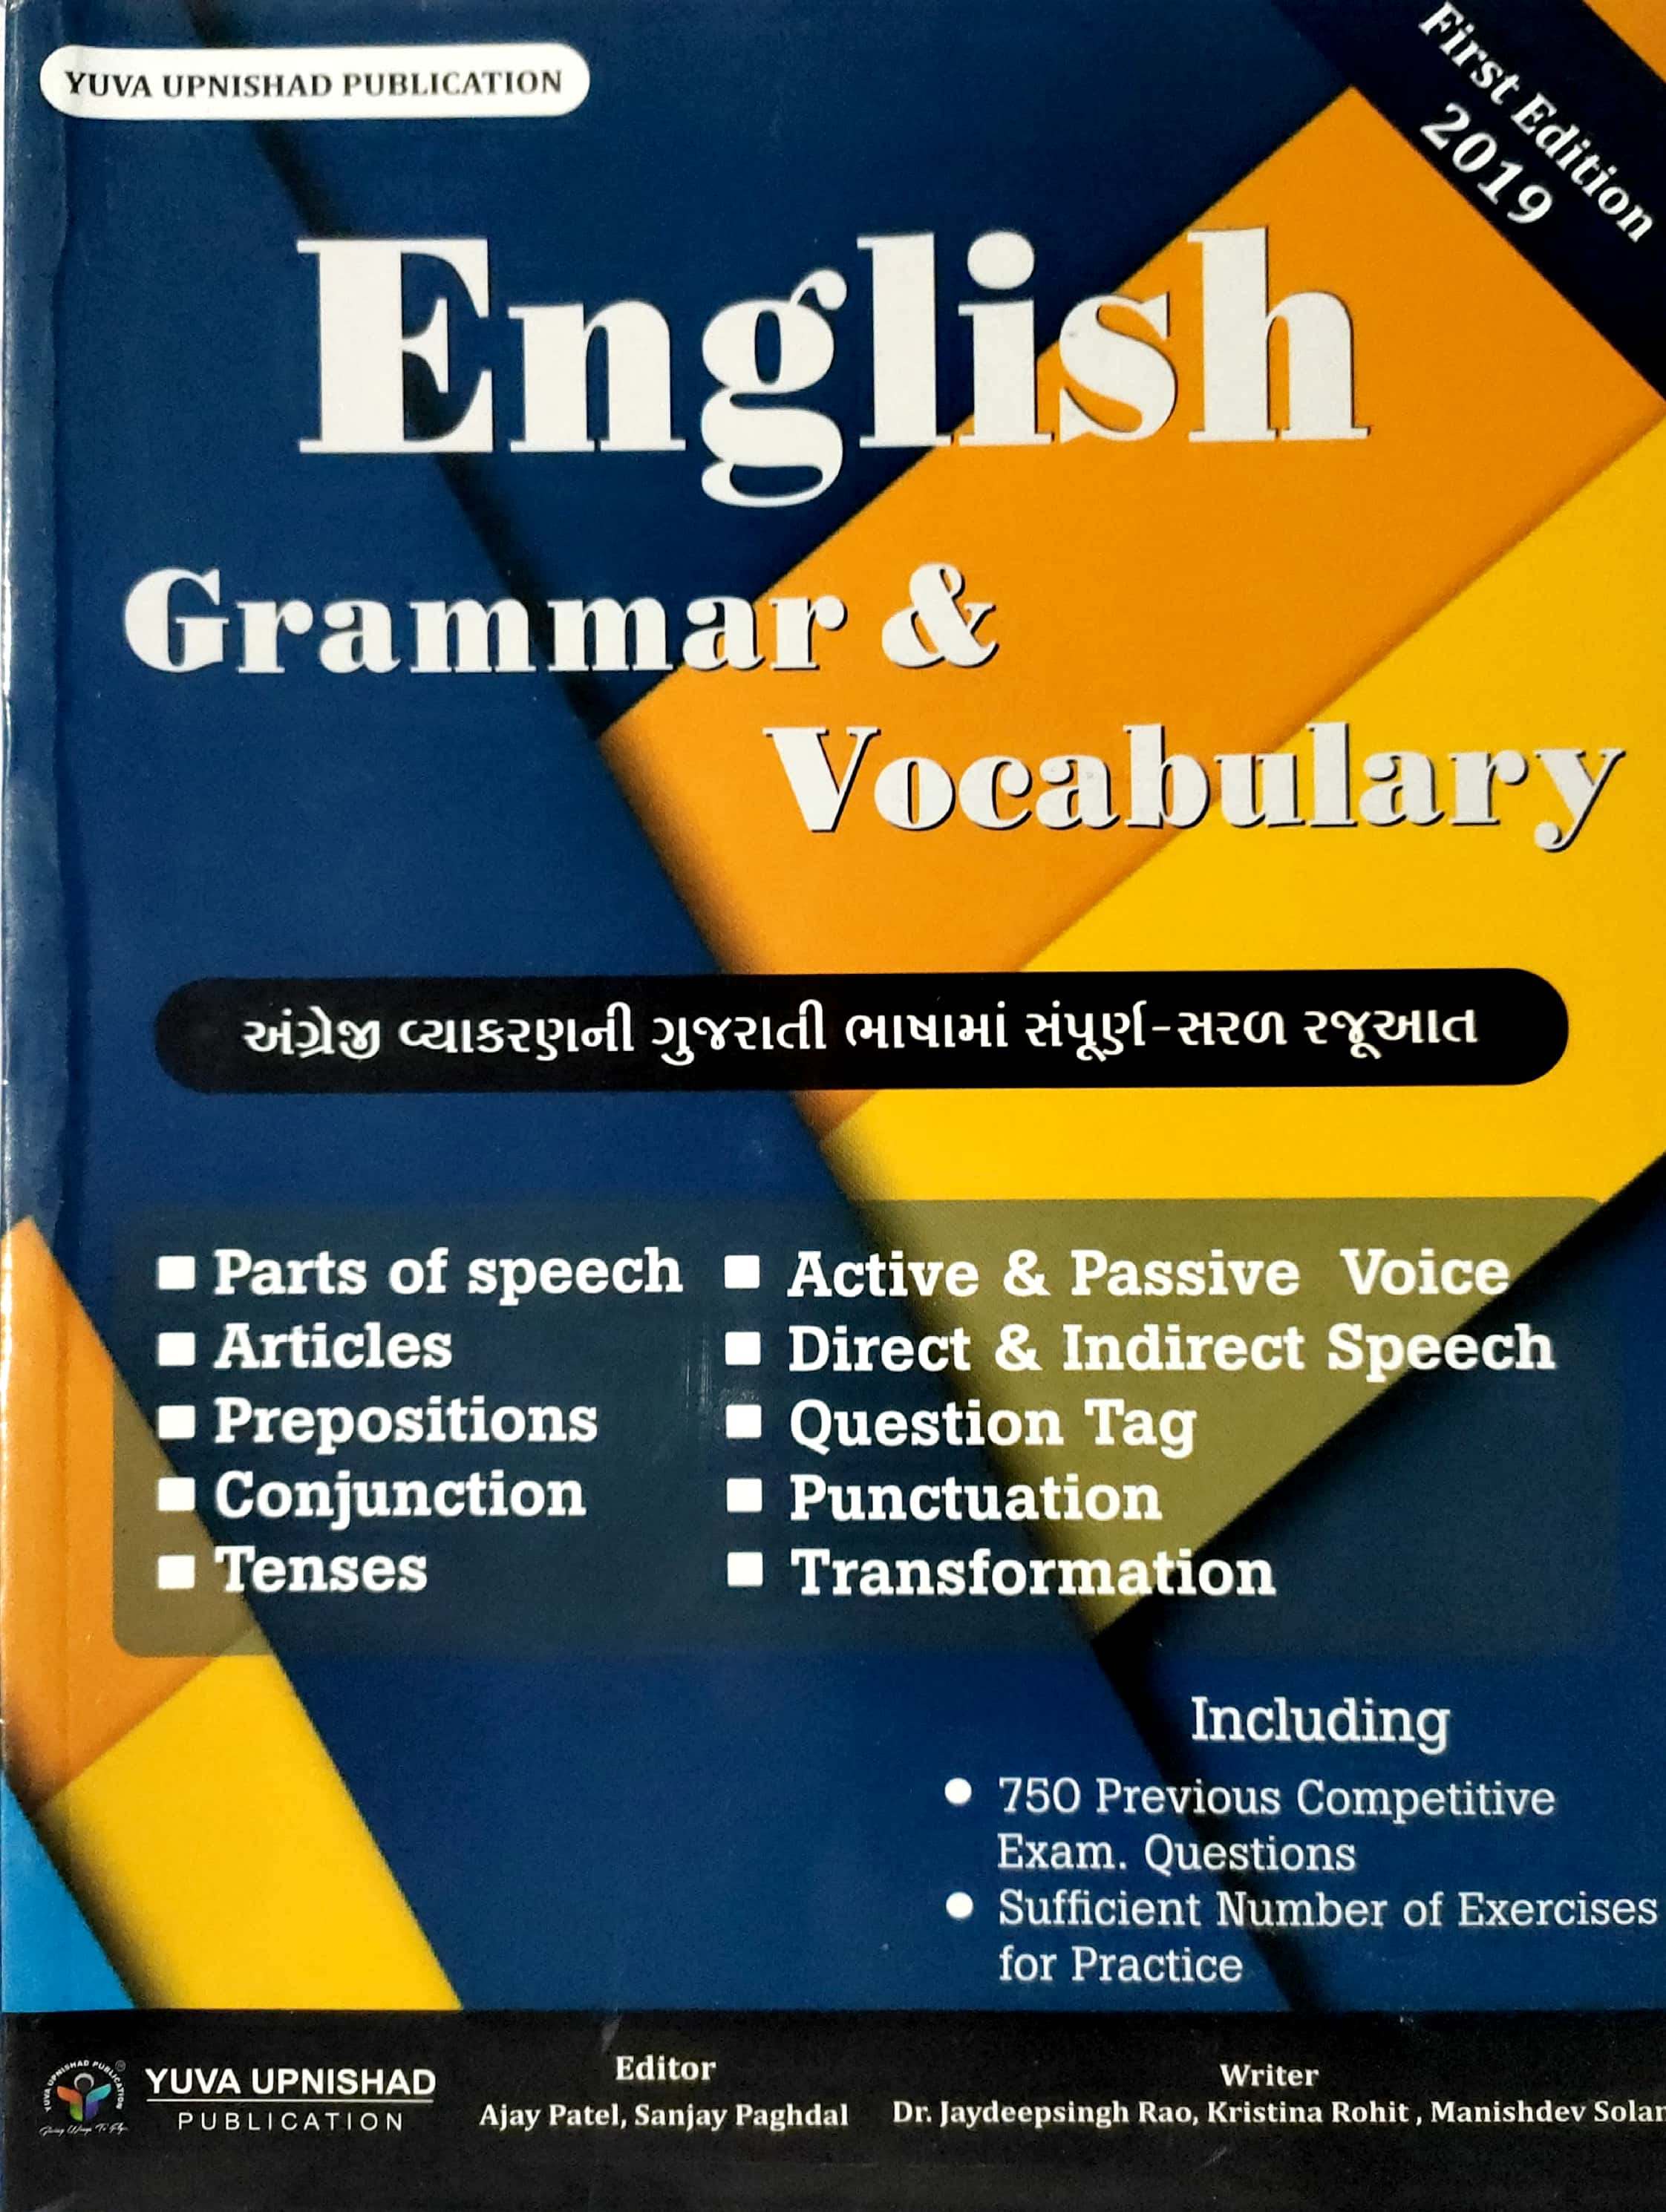 English Grammer & Vocabulary